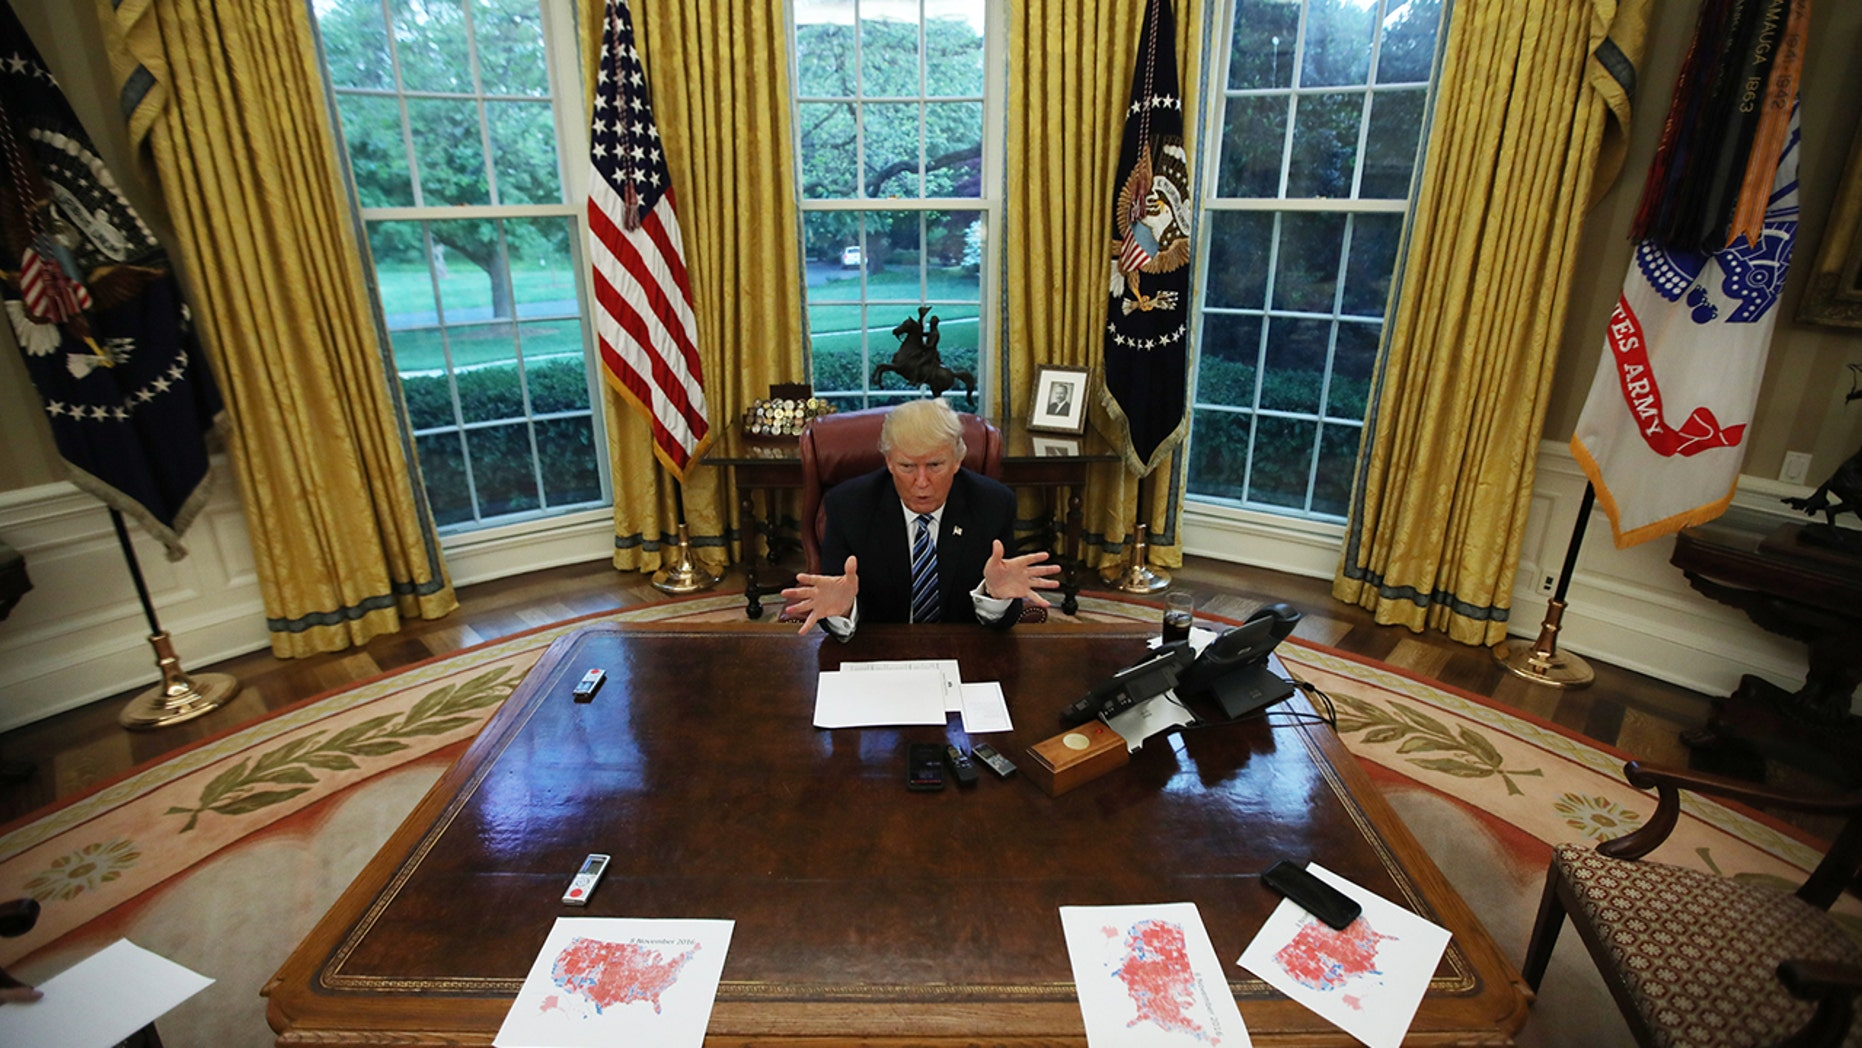 U.S. President Donald Trump speaks during an interview with Reuters in the Oval Office of the White House in Washington, U.S., April 27, 2017. REUTERS/Carlos Barria   TPX IMAGES OF THE DAY - HP1ED4S02VJ7Y